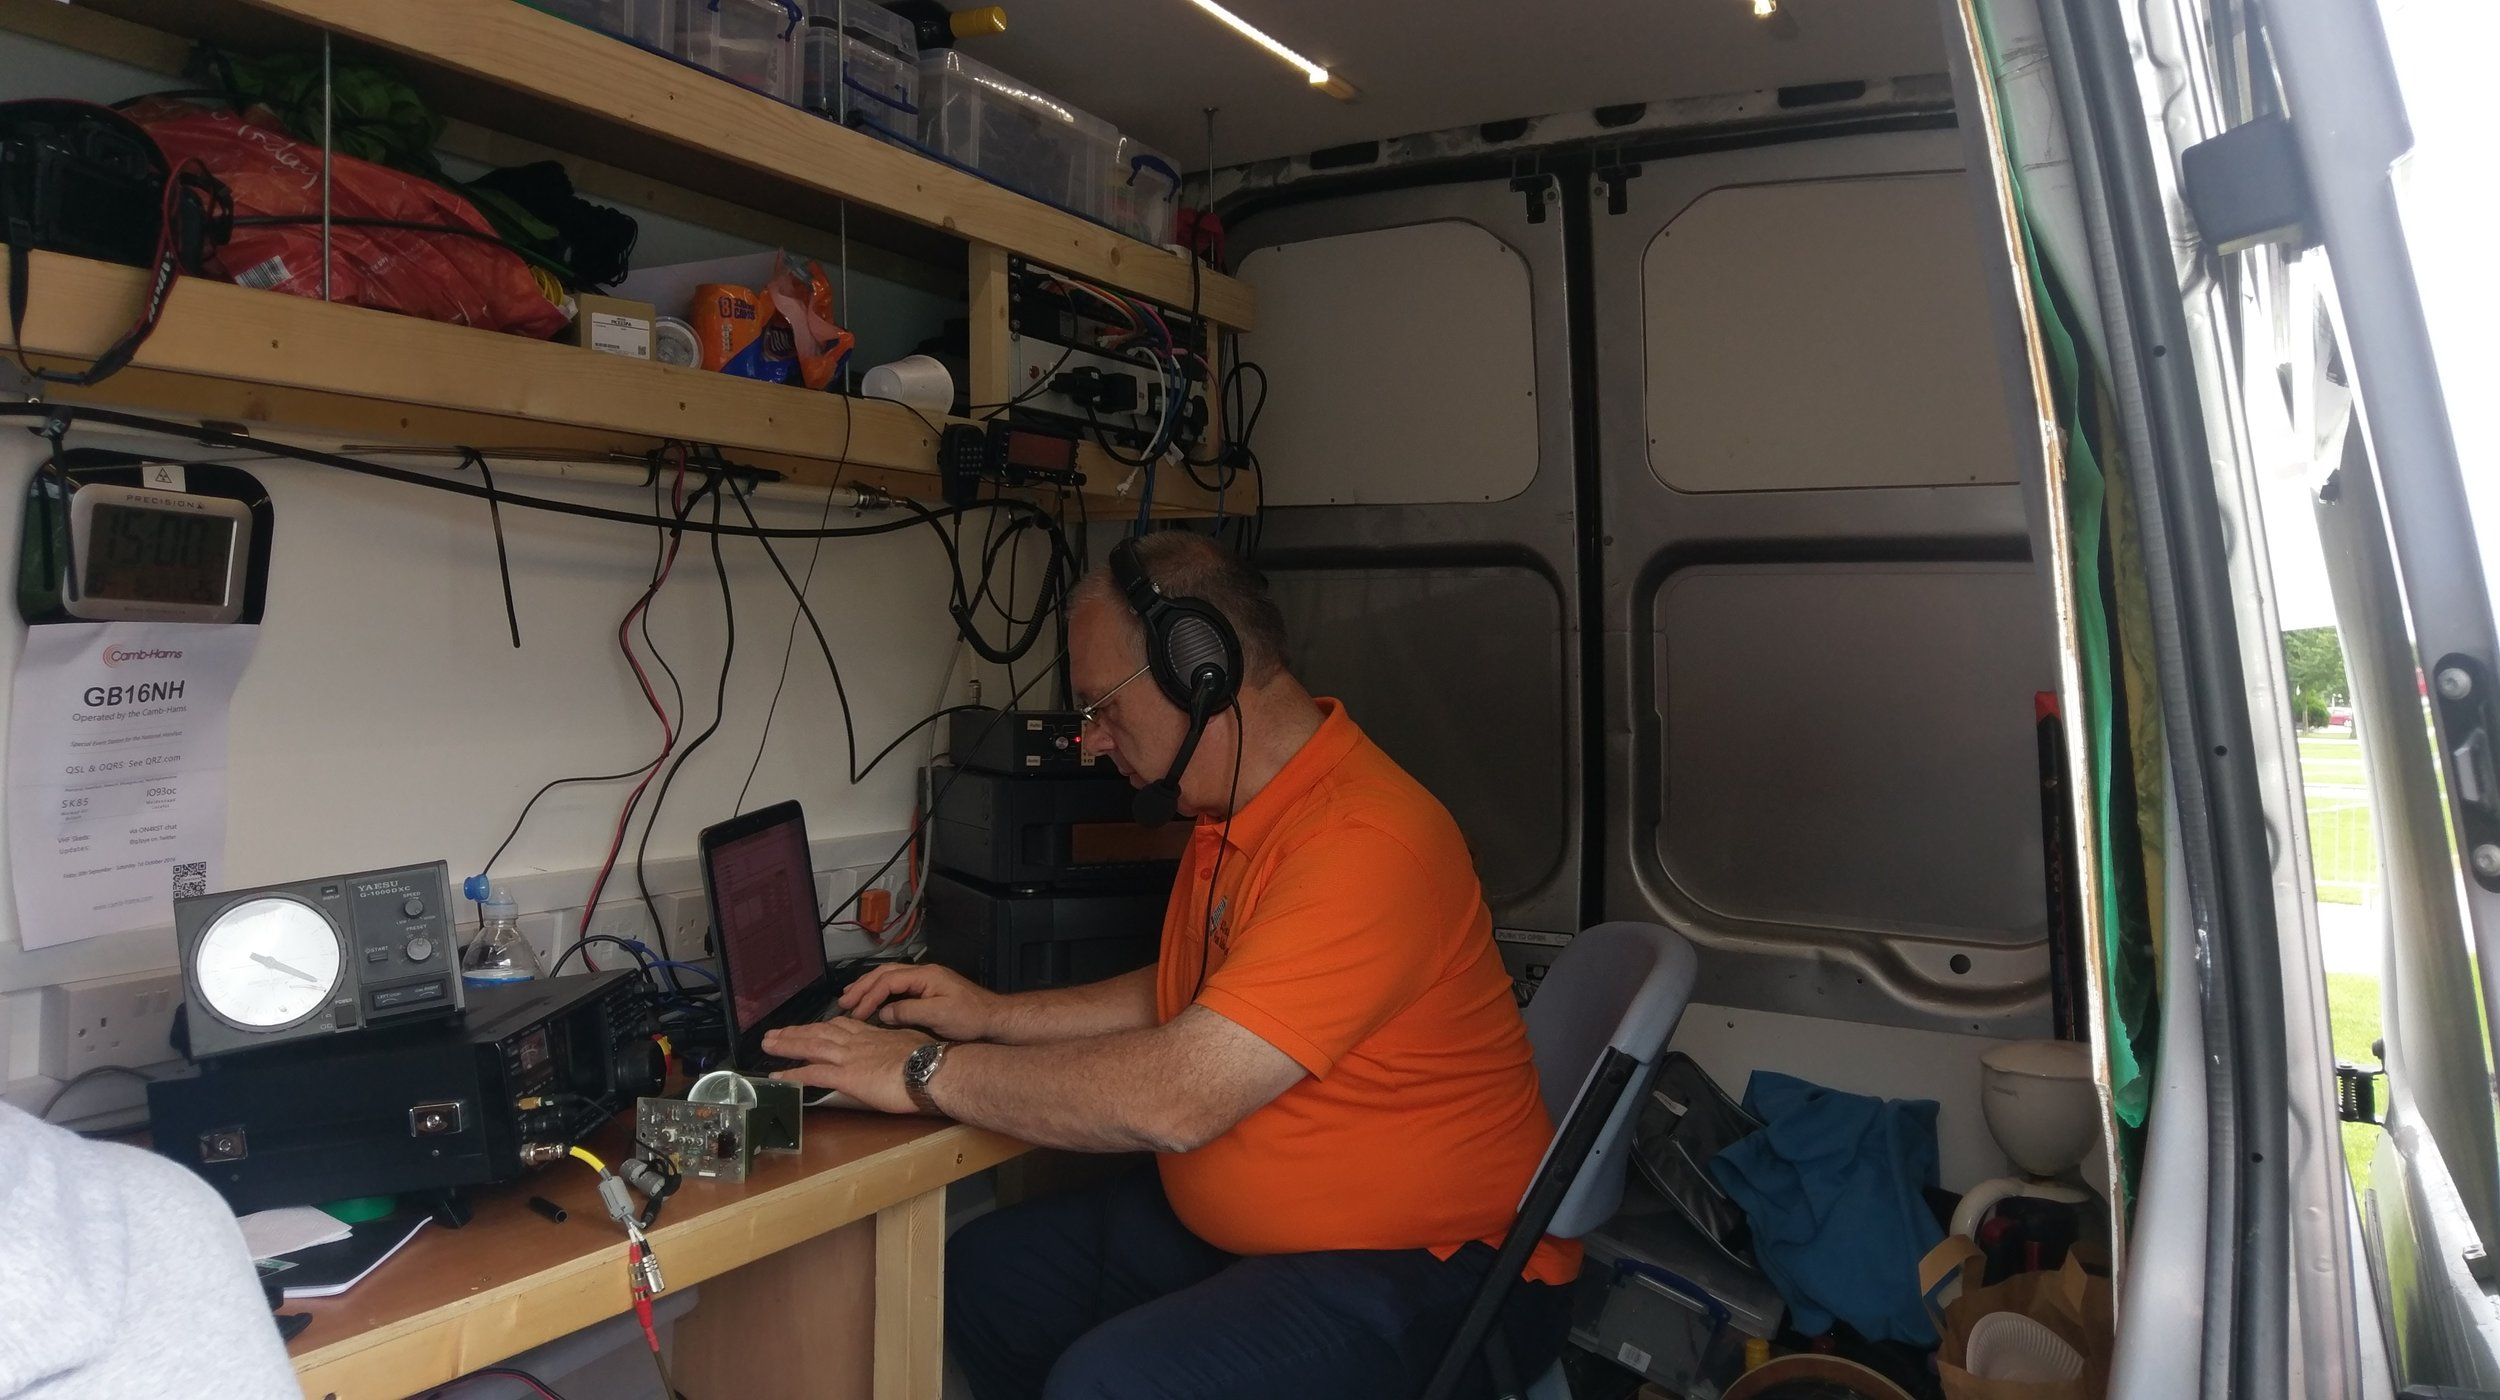 Martin Butler (M1MRB / W9ICQ) works on the Camb-Hams Flossie2 special event station - GB16NH